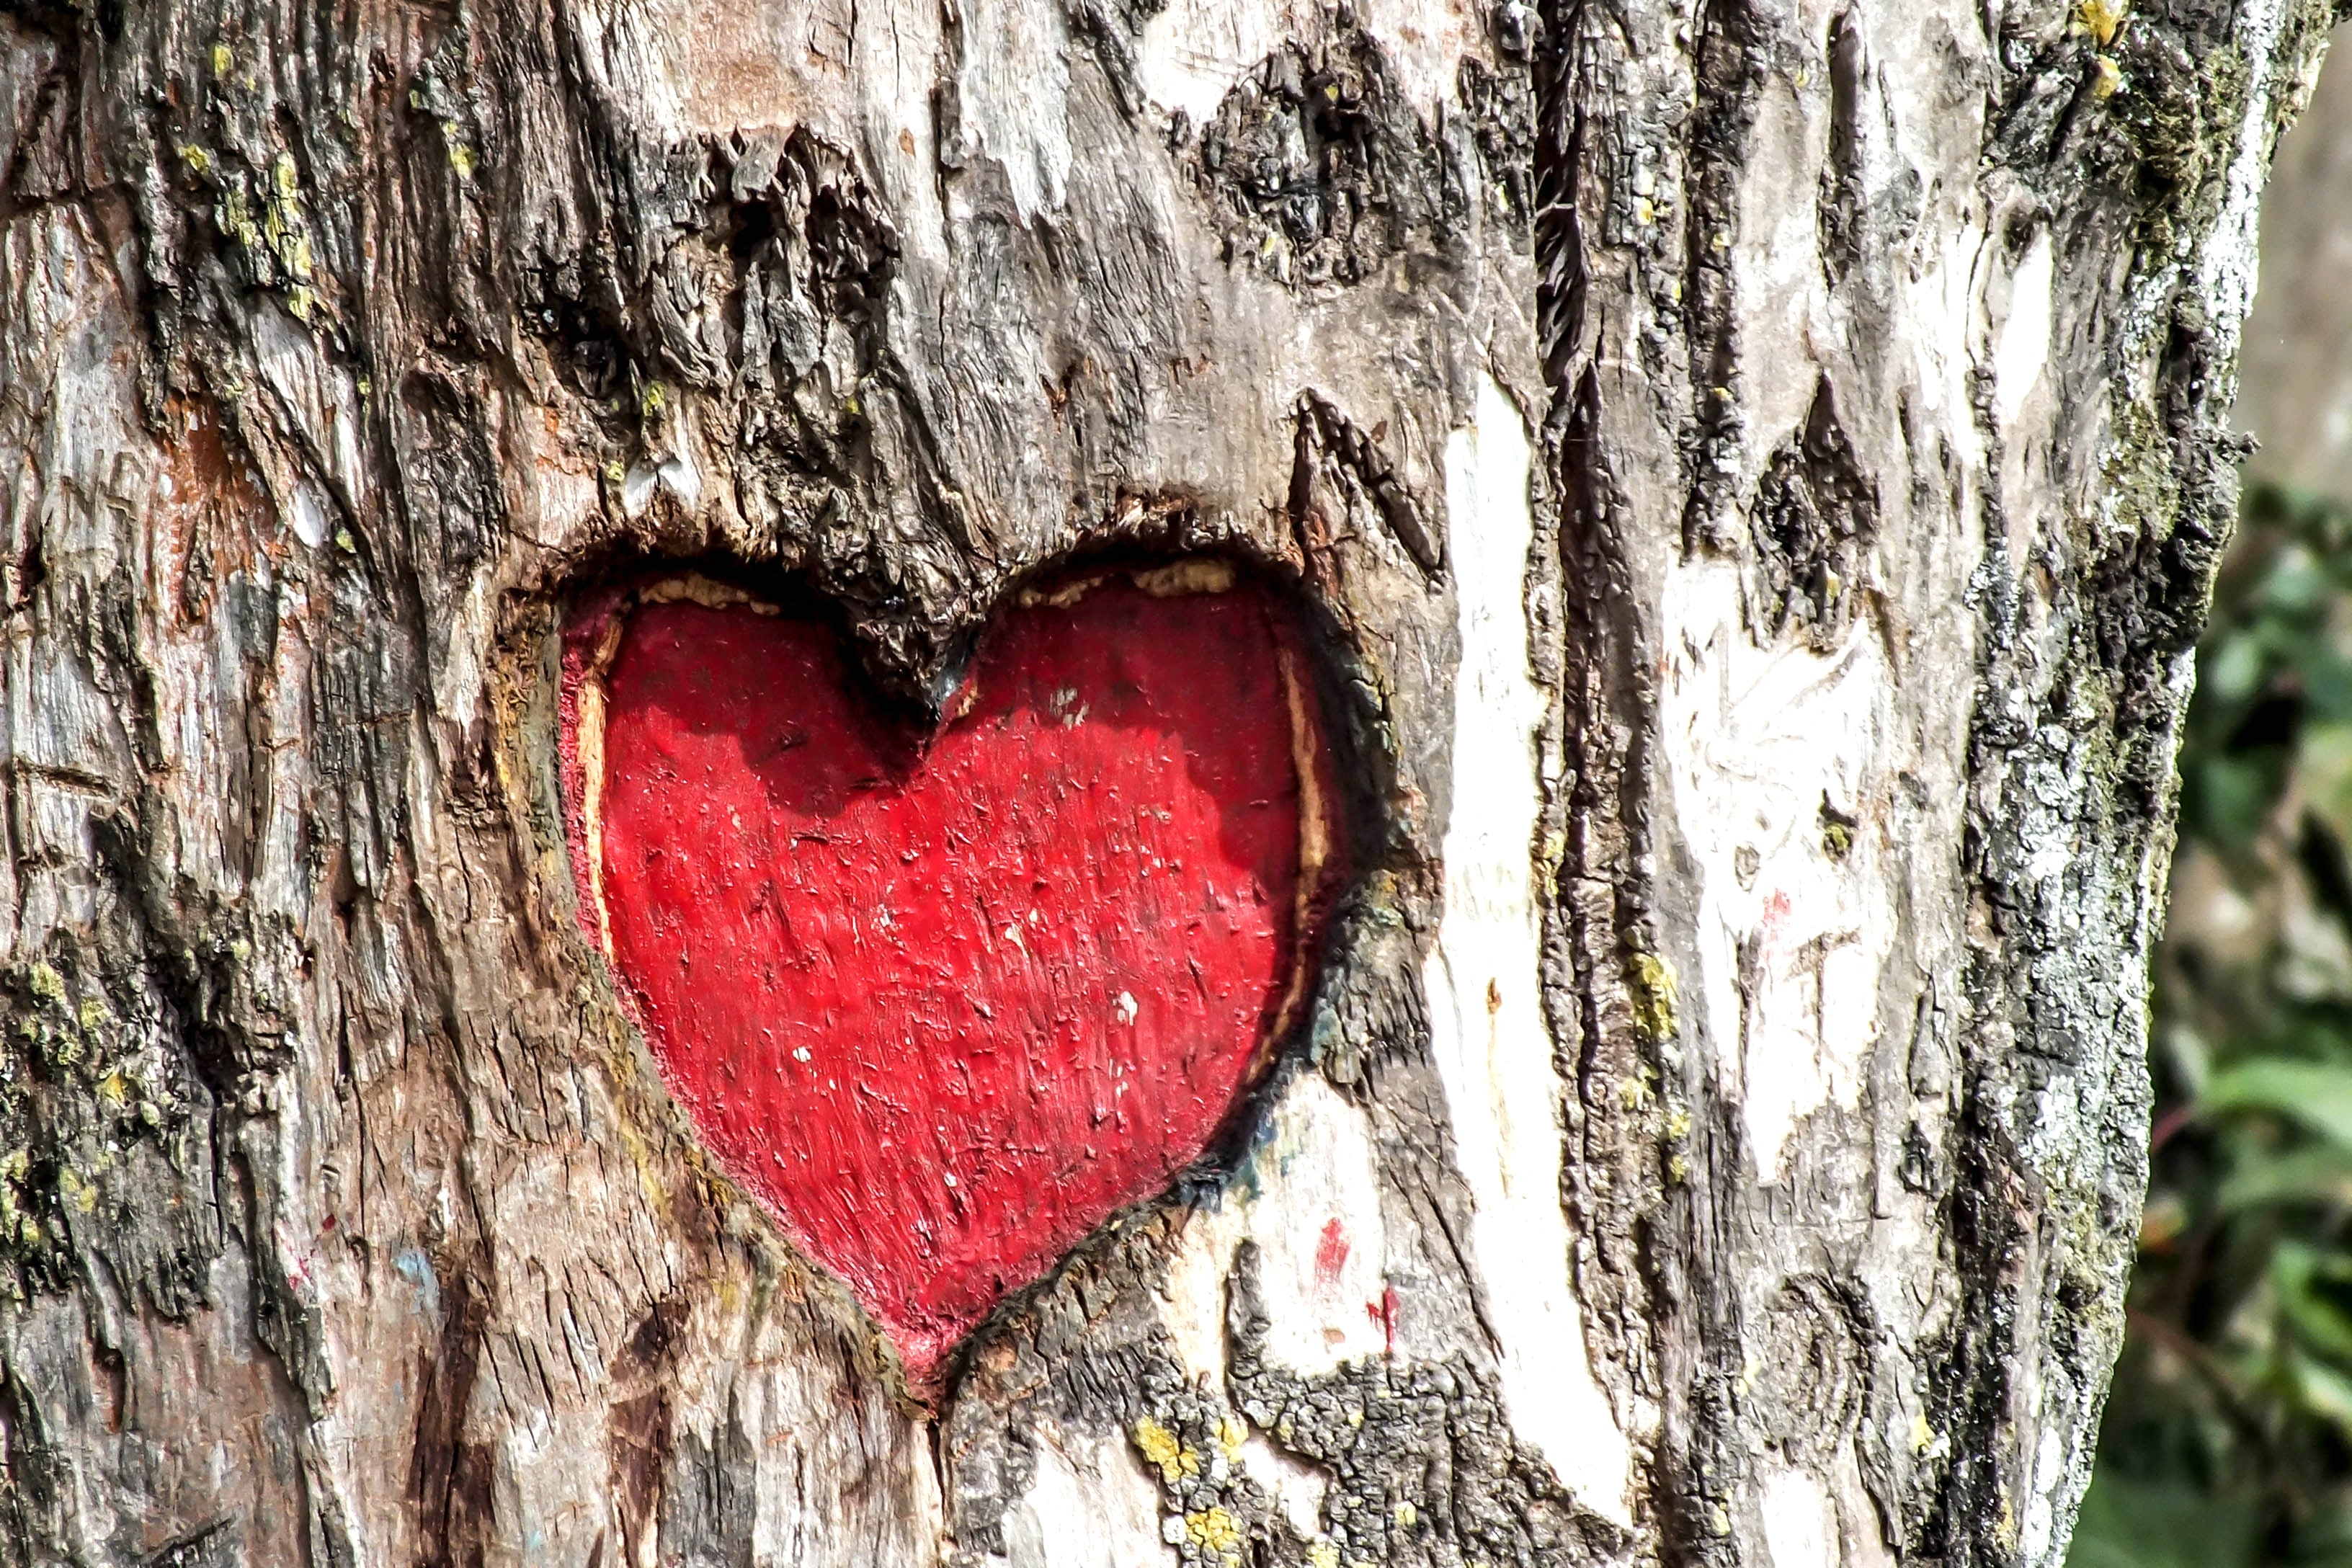 A heart carved into the trunk of a tree, colored in red.